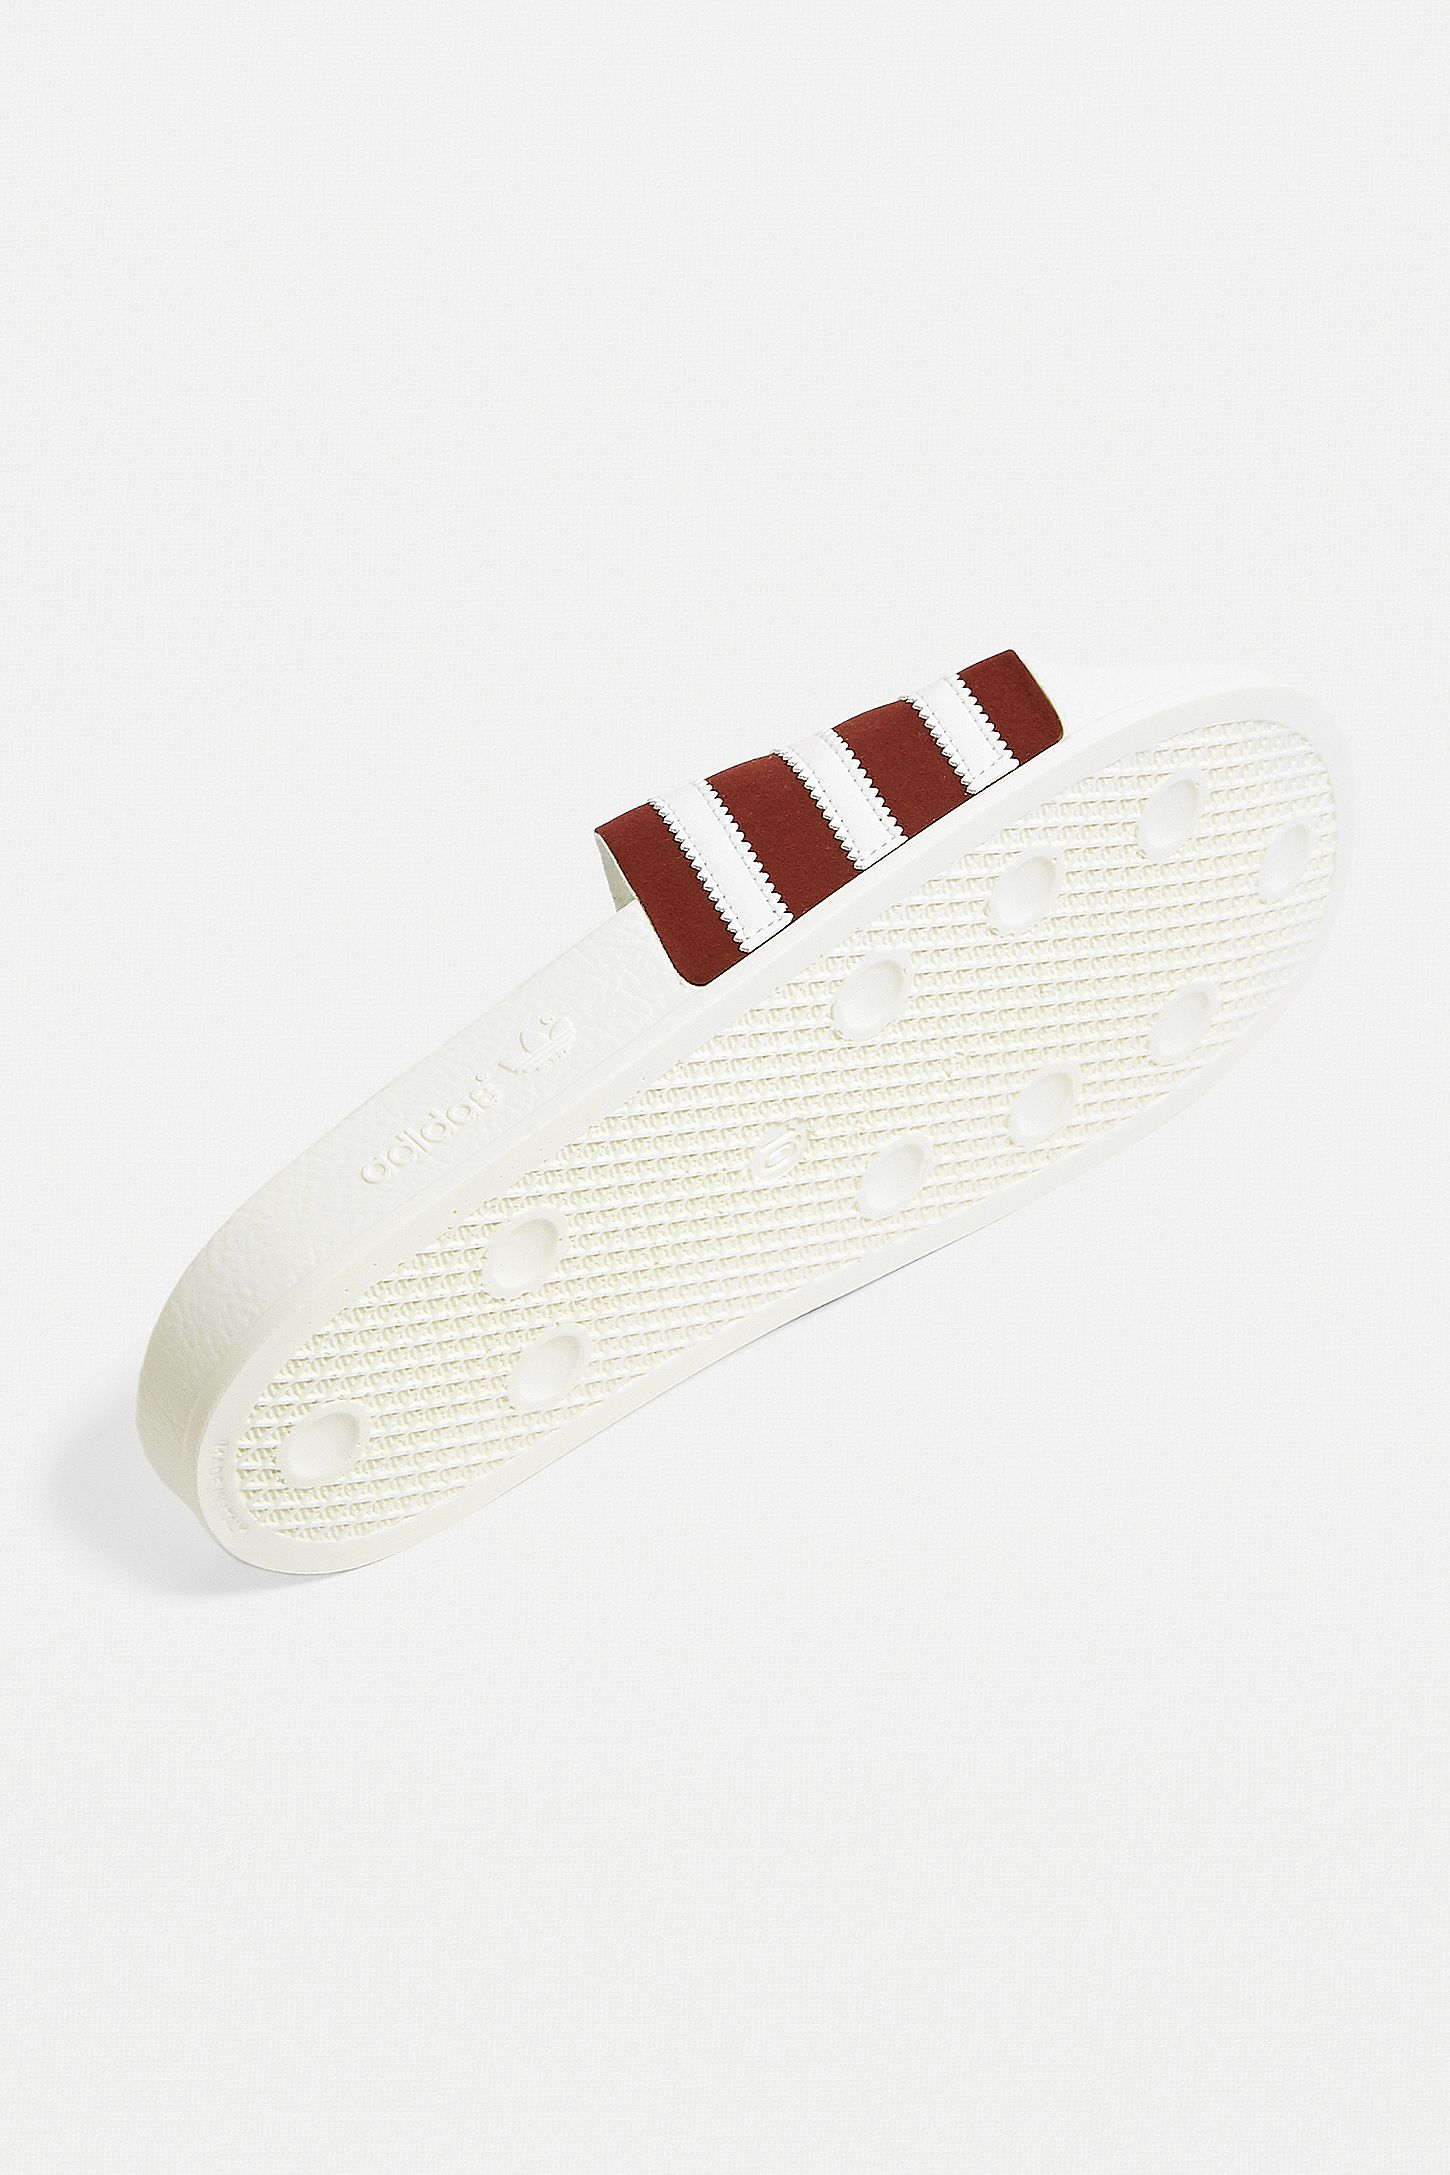 b57409ee70fe Slide View  5  adidas Adilette White and Burgundy Pool Sliders